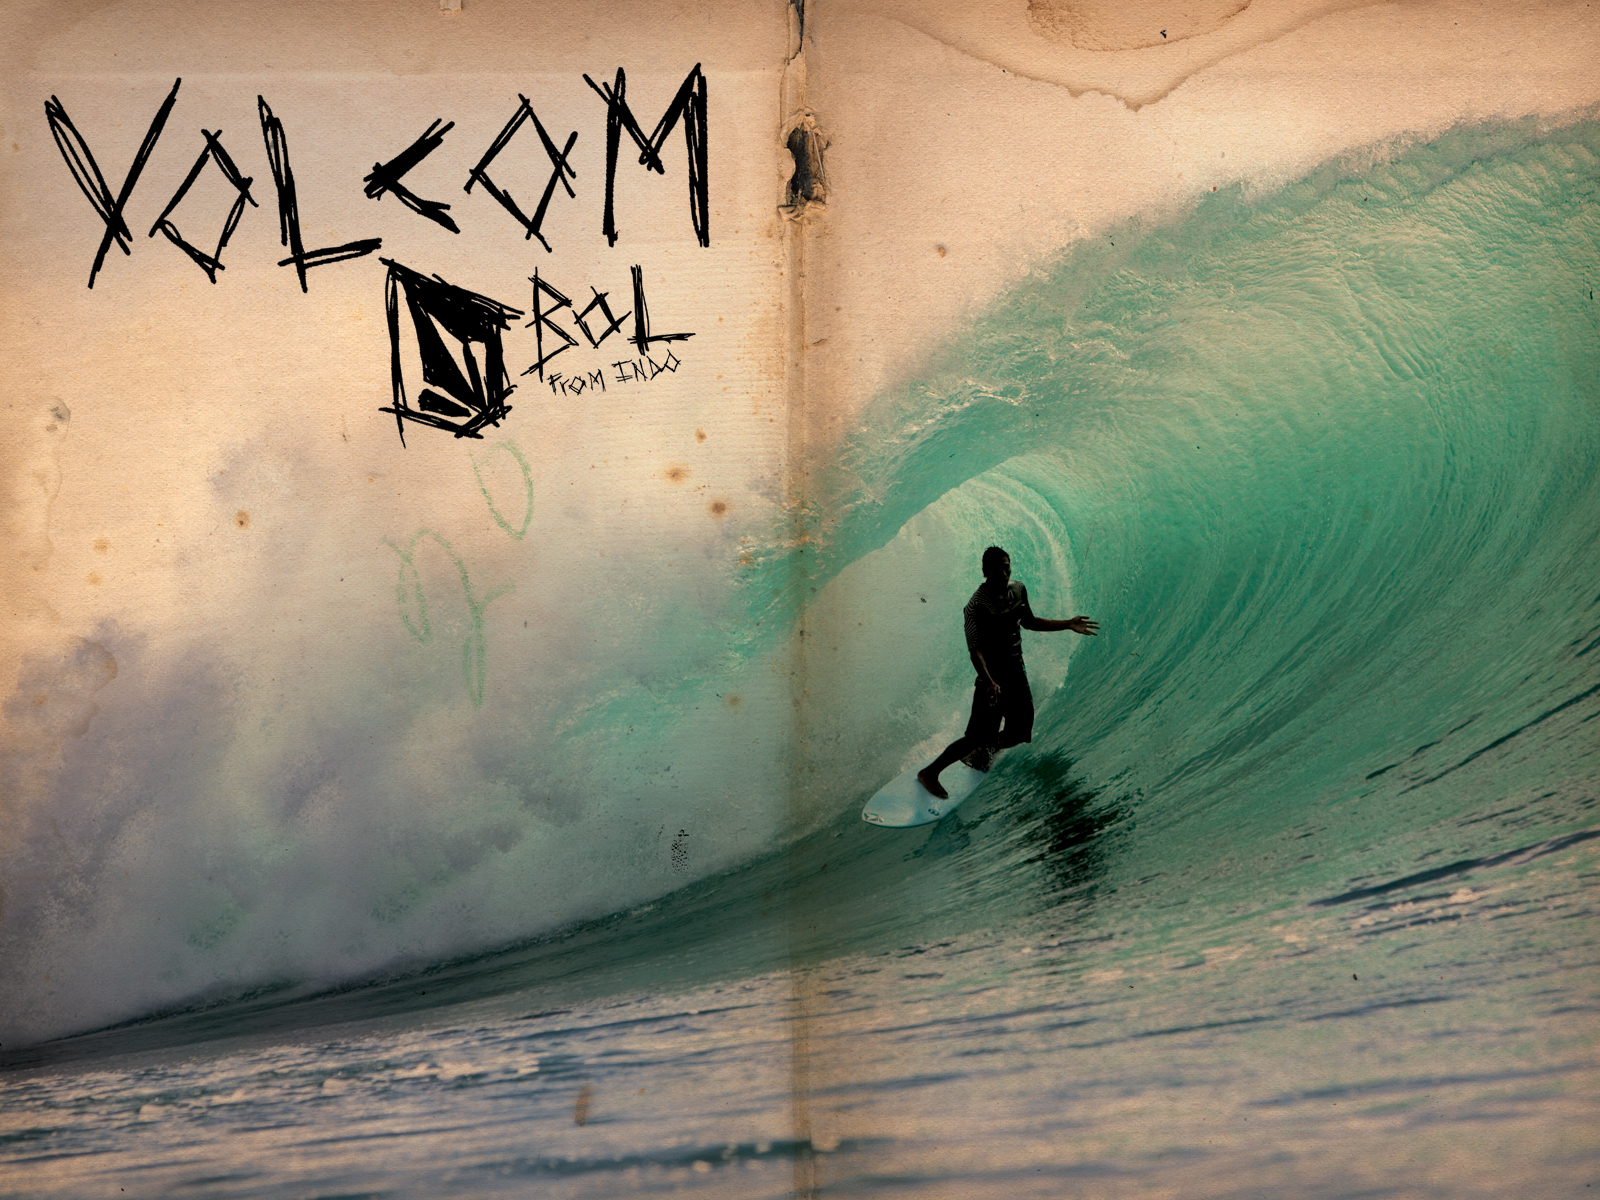 Wallpaper Volcom Stone | New hd wallon